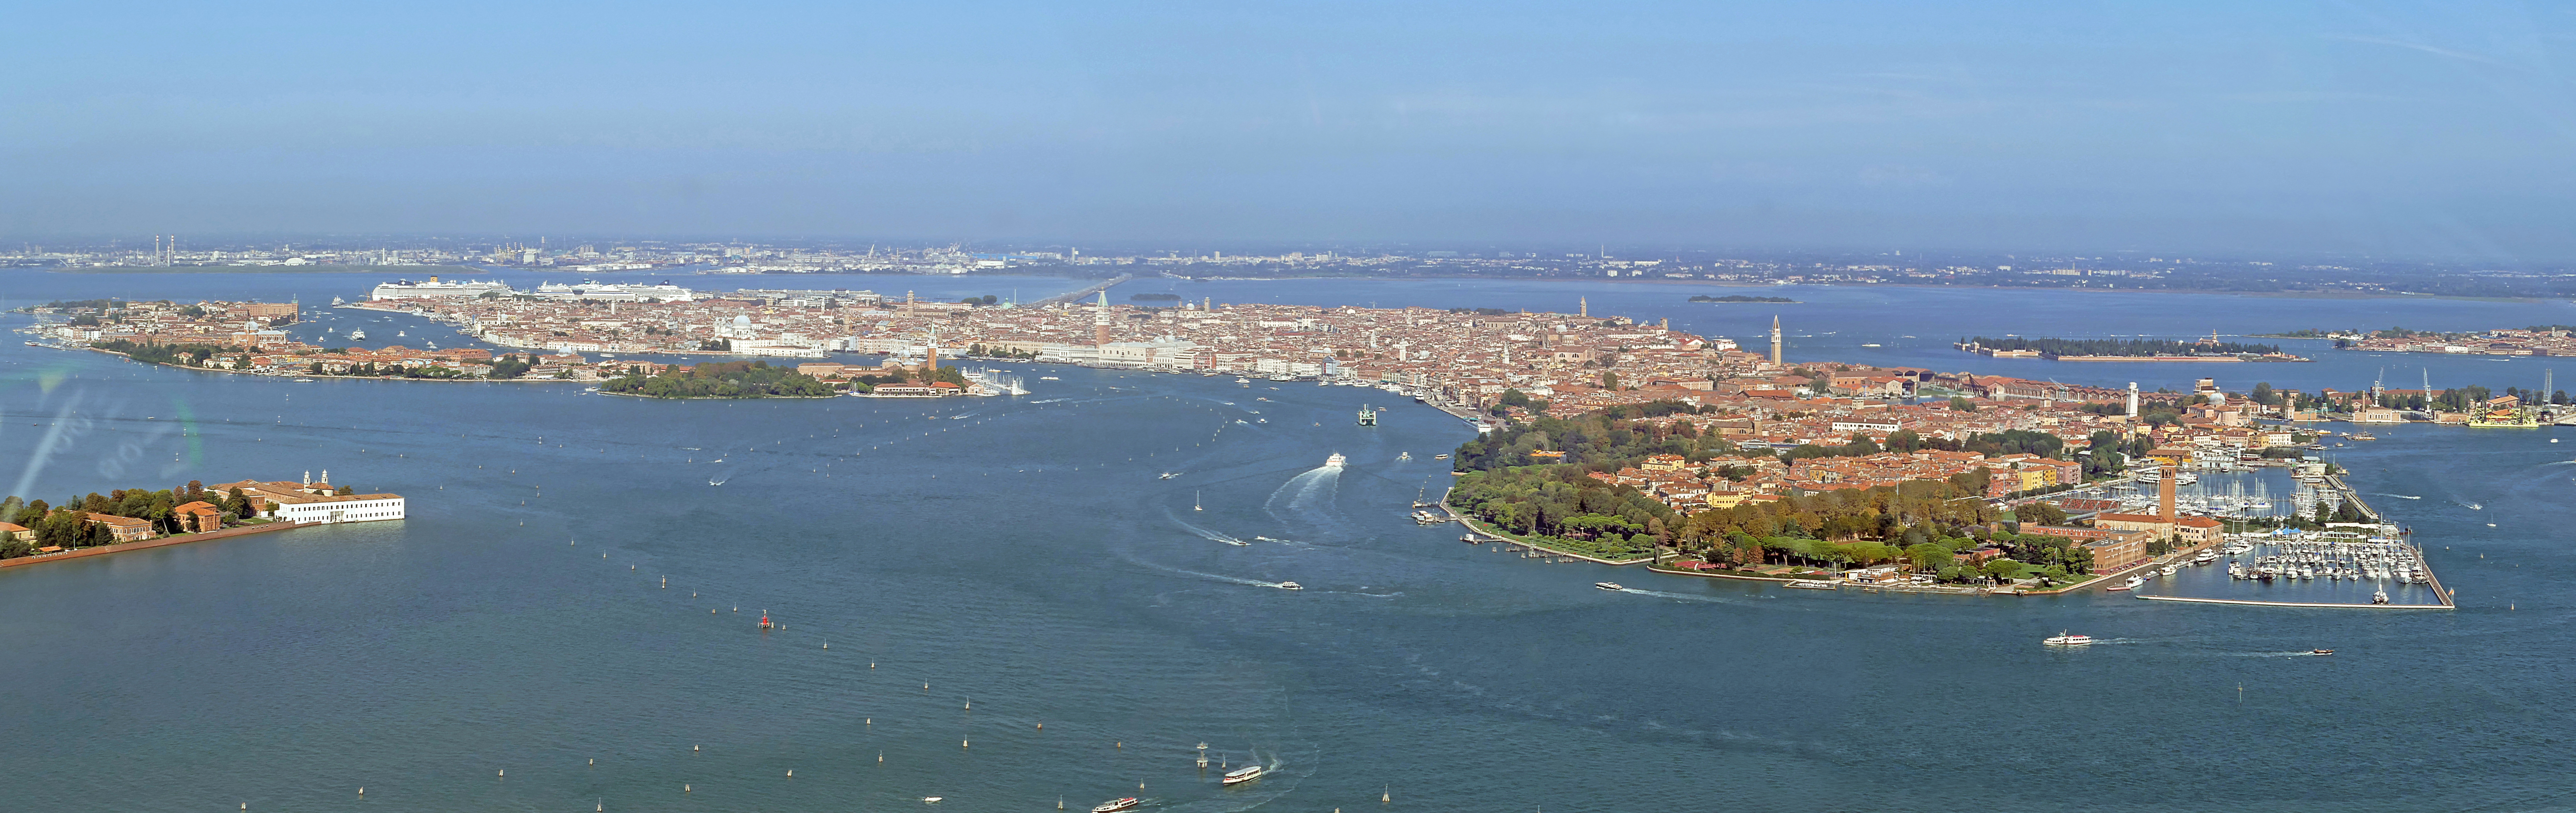 news/Happy Birthday, bellissima Venezia!584/2.jpg